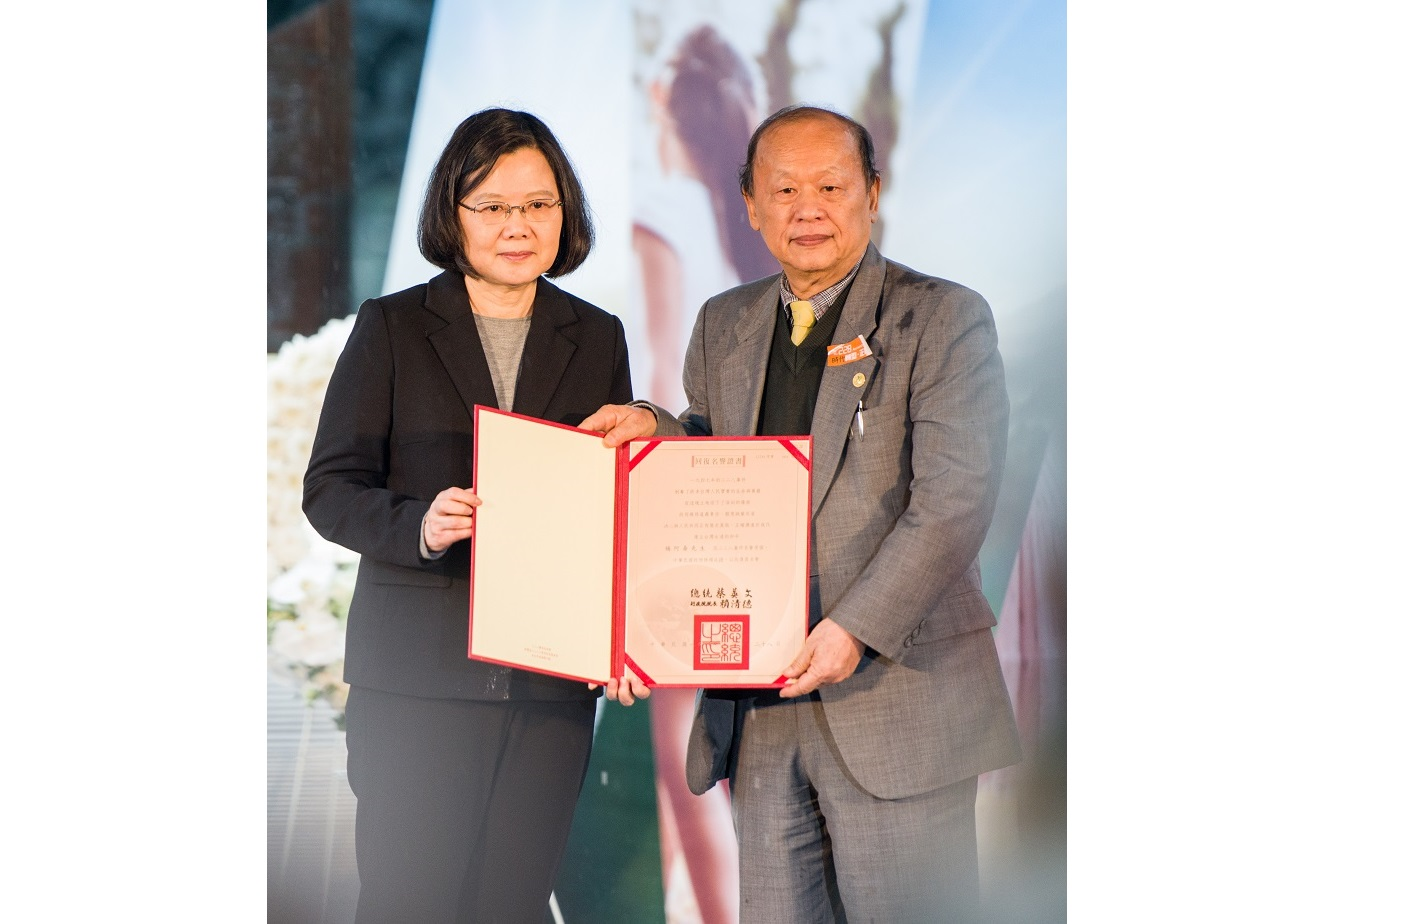 President Tsai personally awarded the reinstatement of reputation certificates to the families of the victims of 228 Incident.